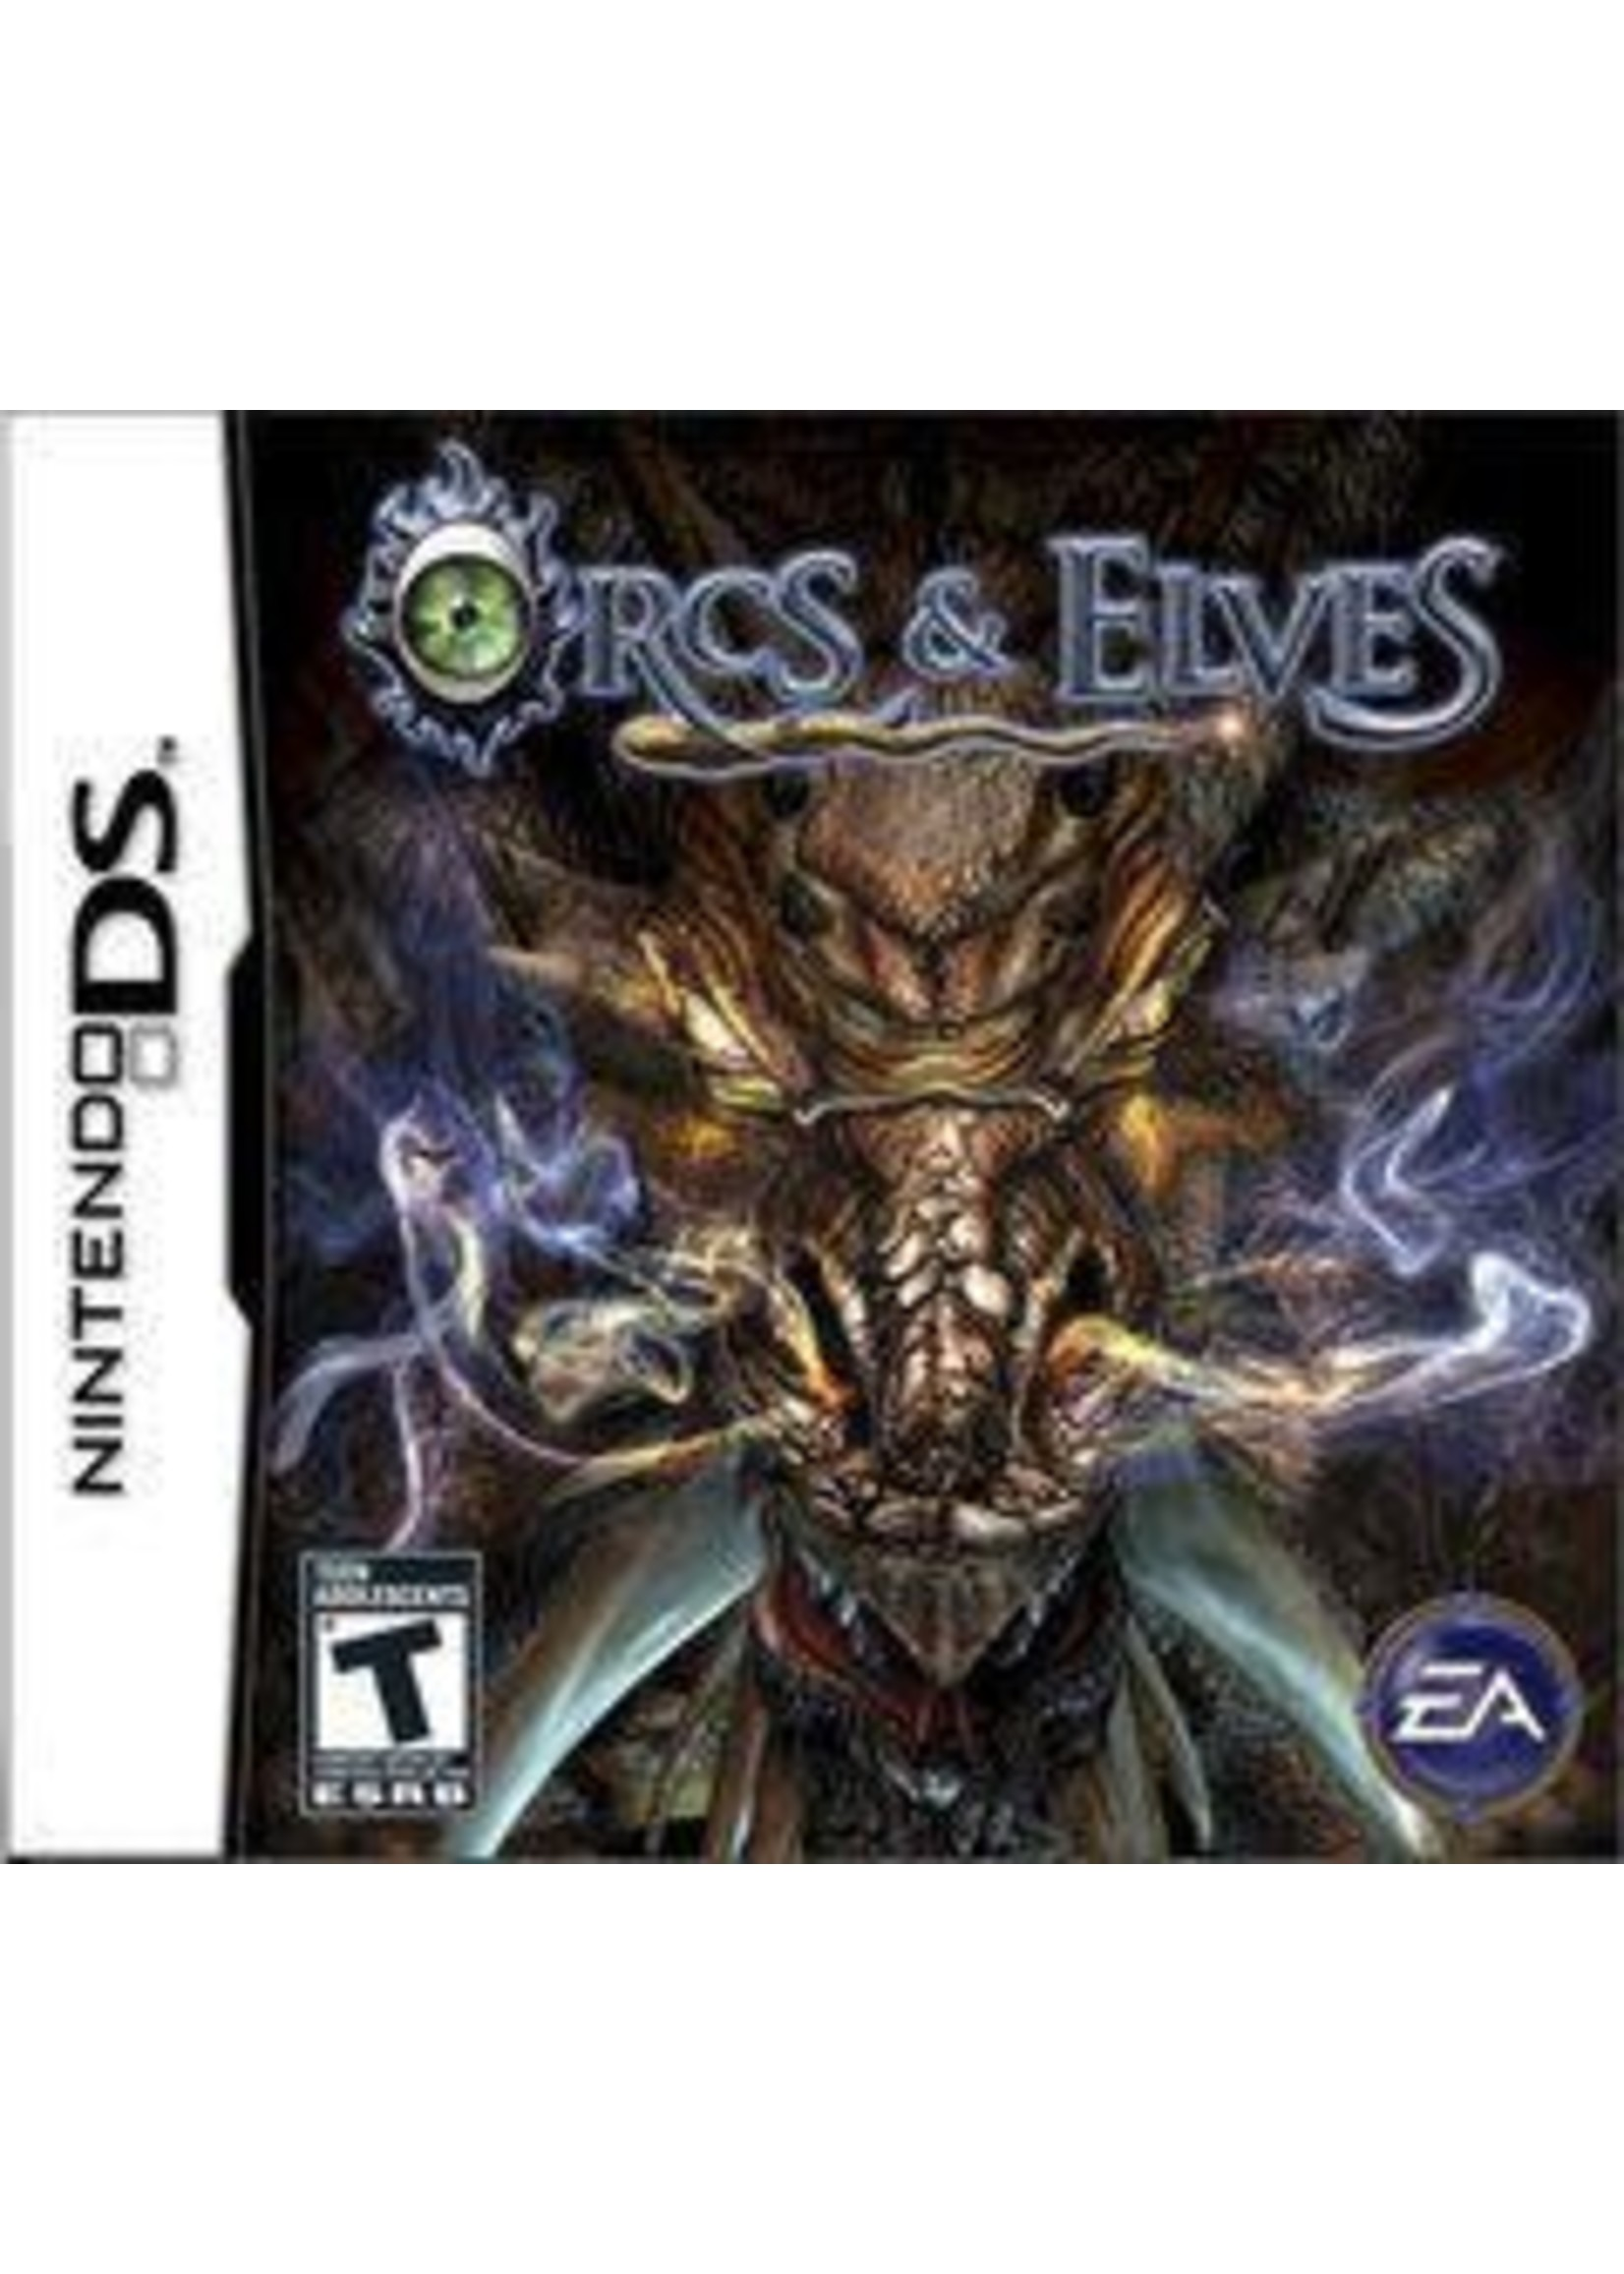 Orcs And Elves Nintendo DS